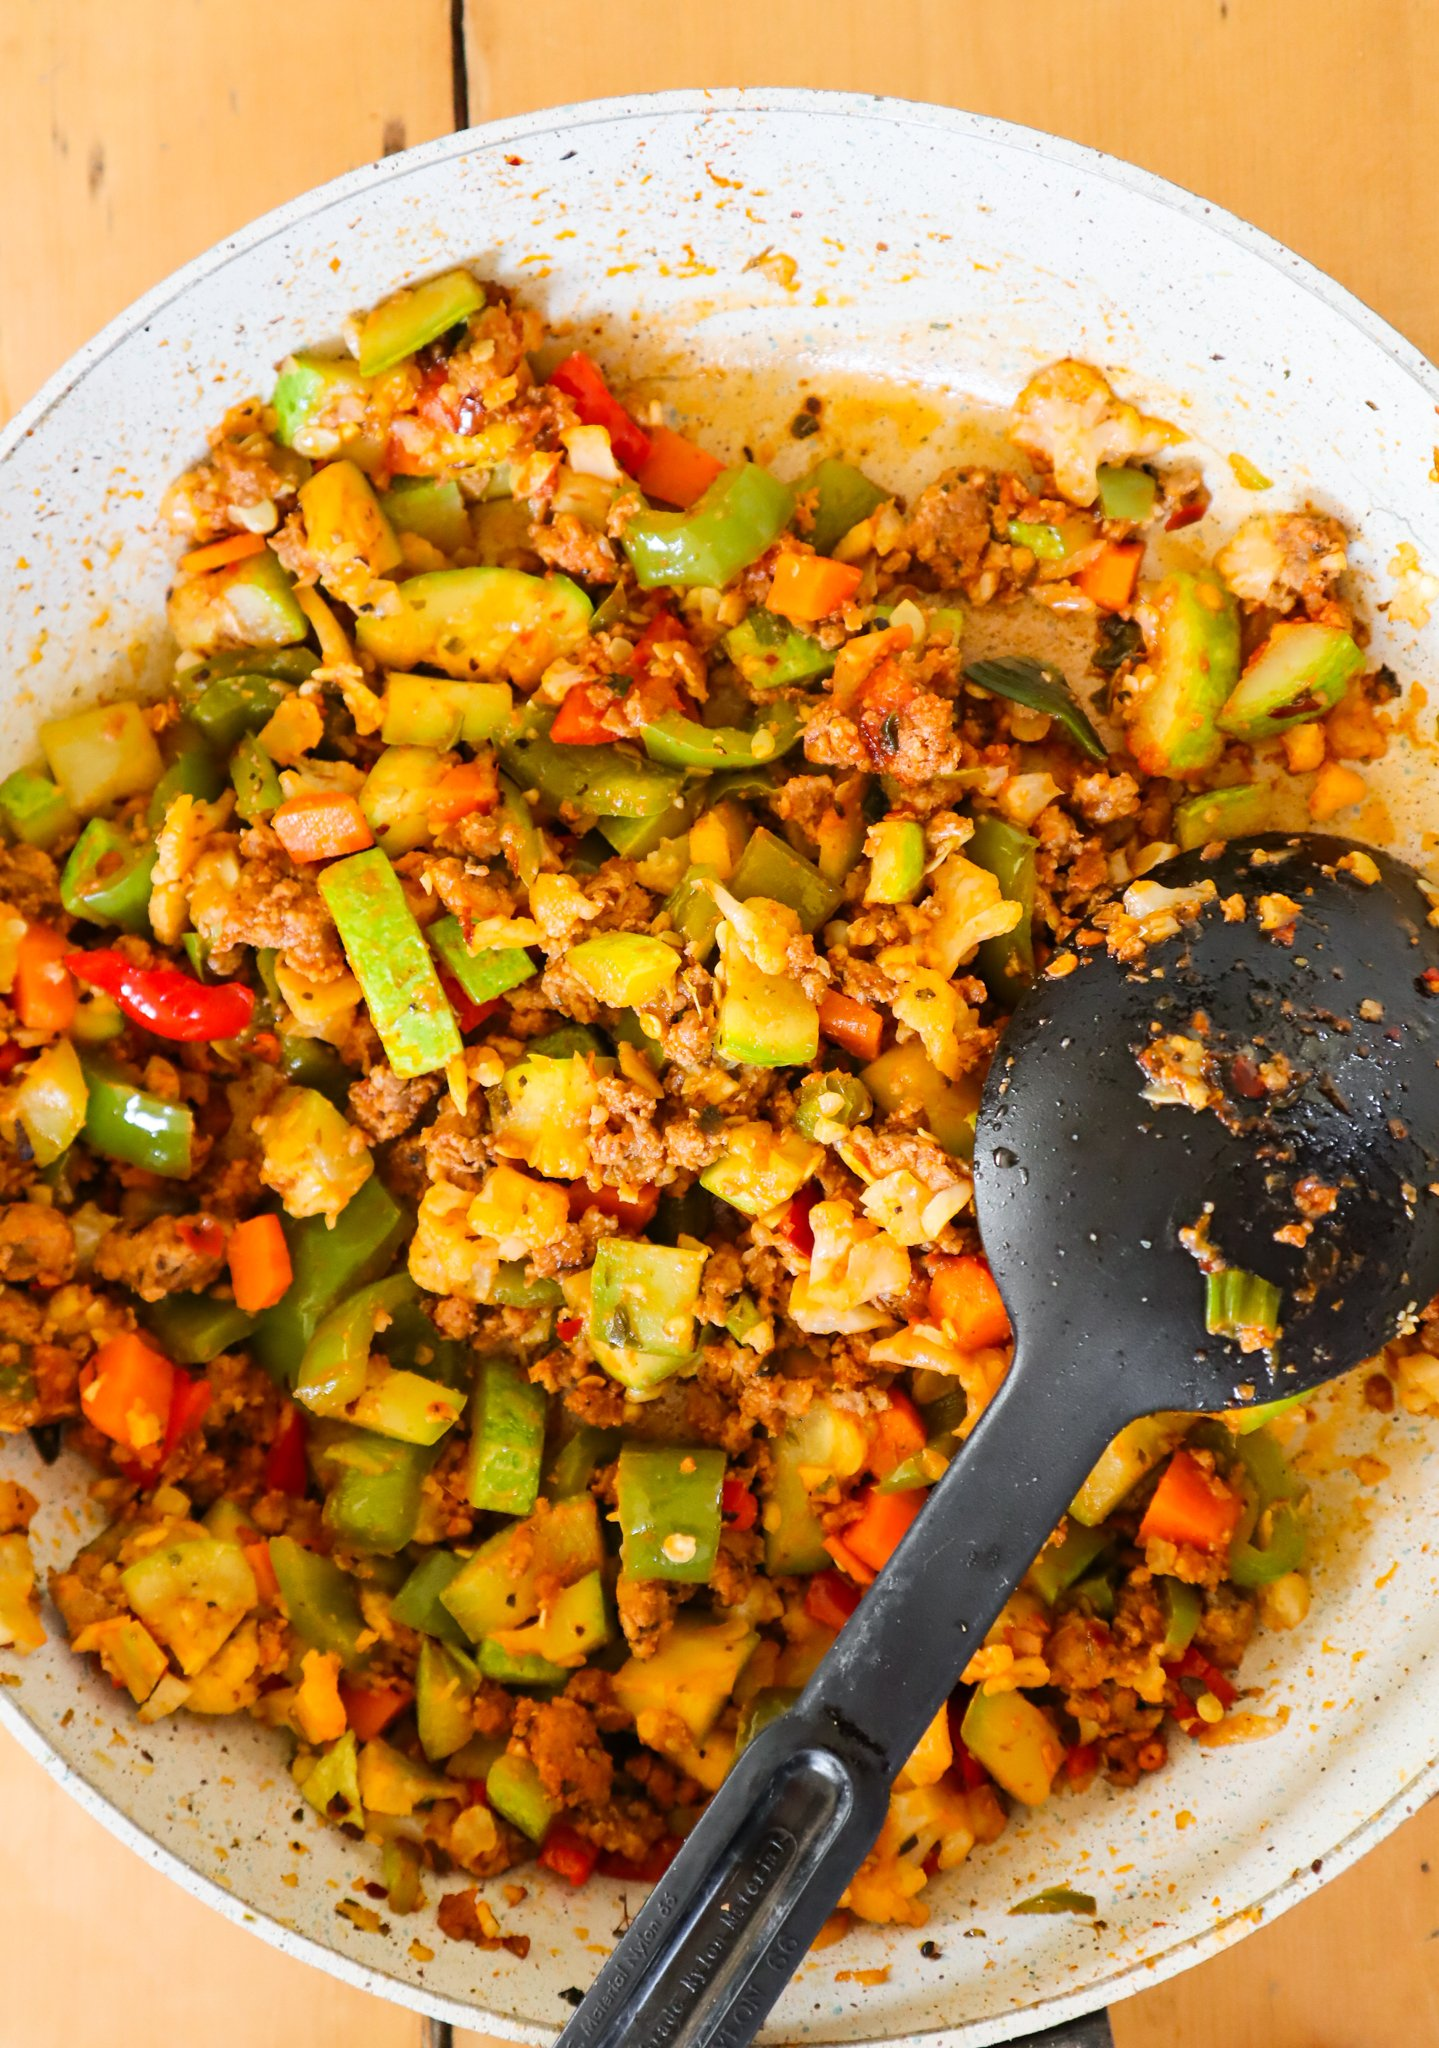 This healthy ground beef and vegetable skillet is an easy and healthy low carb dinner idea with ground beef that you can make in about 20 minutes! Chop up some vegetables, heat up the pan and your delicious, flavorful dinner is ready. Serve this healthy ground beef recipe with some rice or avocado and fresh herbs to keep it low carb.